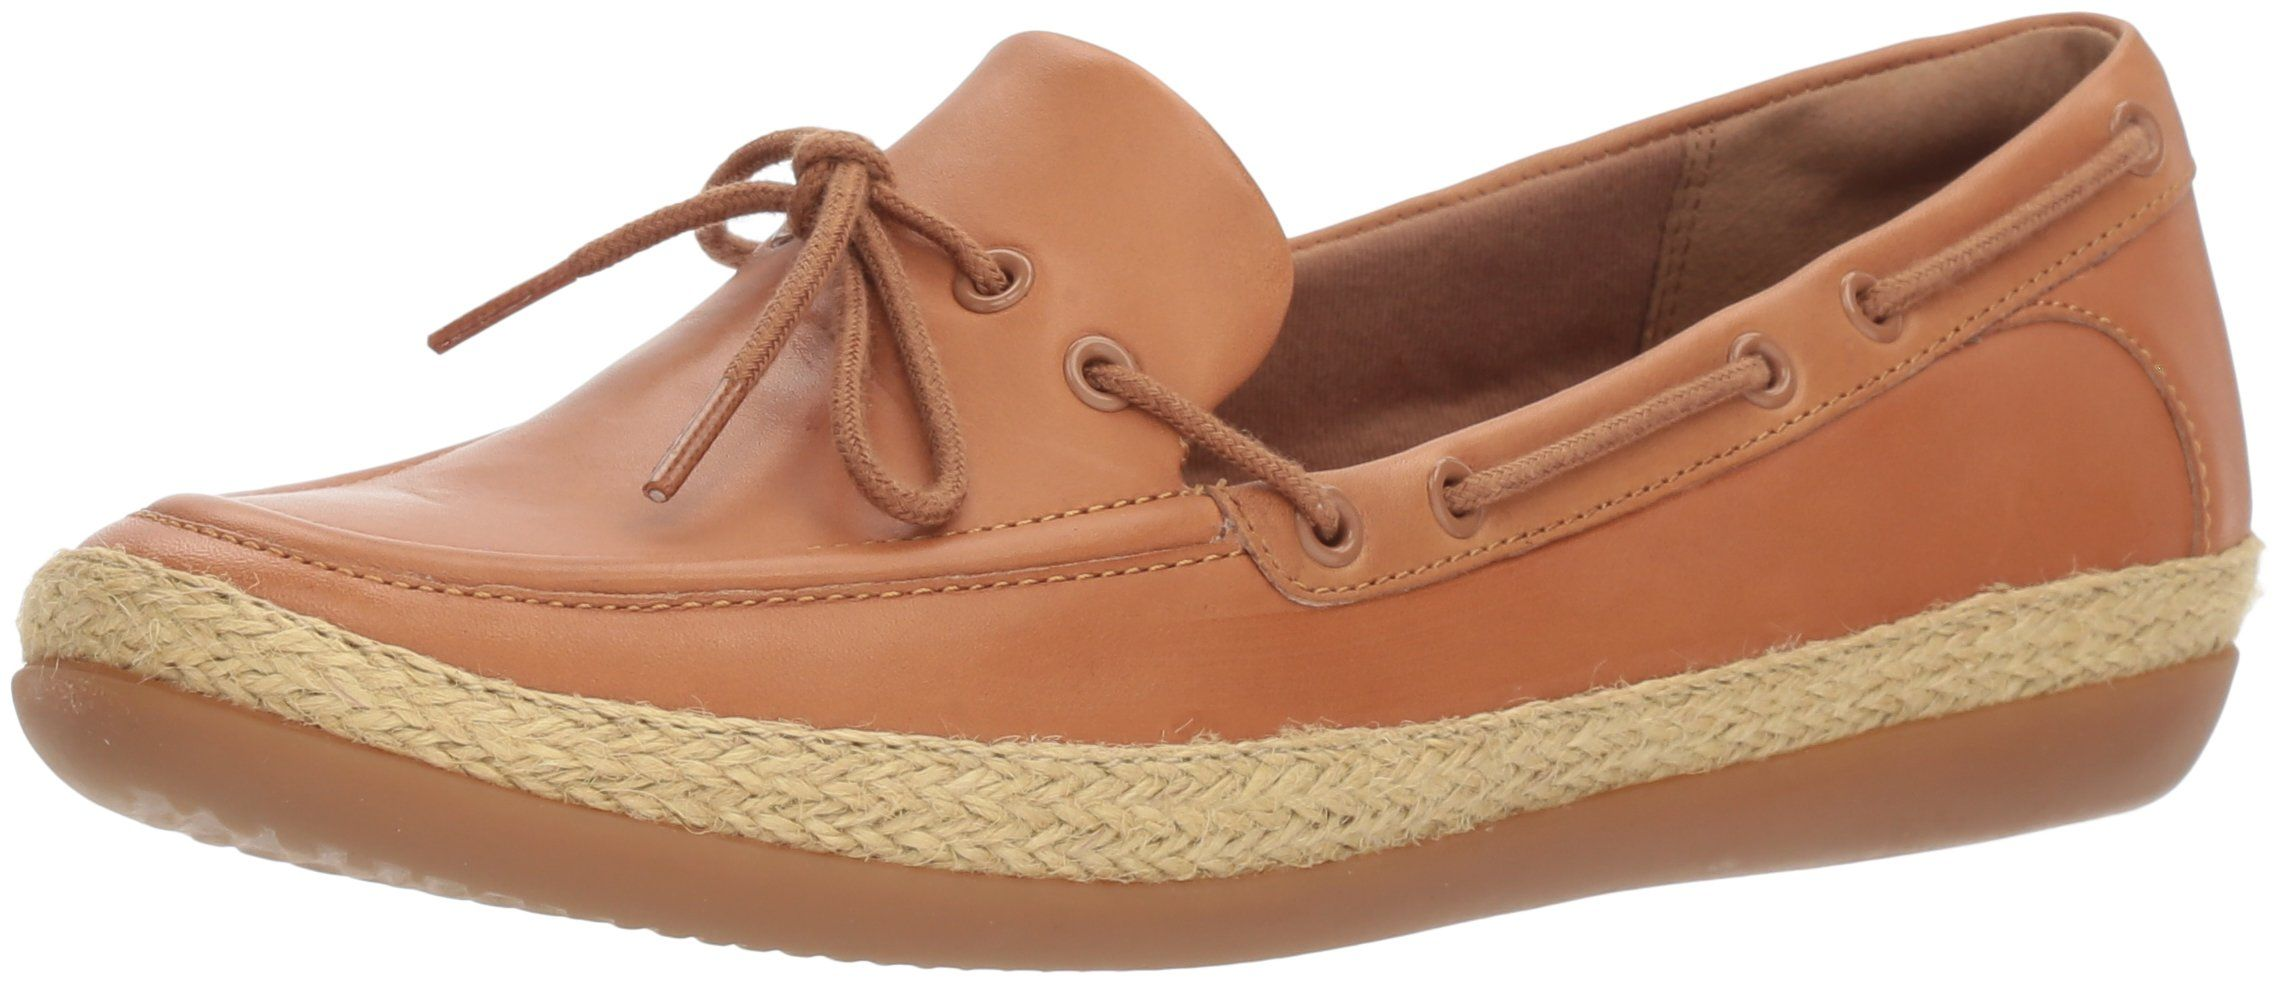 8c6d87c8127 CLARKS Womens Danelly Bodie Boat Shoe Light Tan Leather 8 Wide US   Read  more reviews